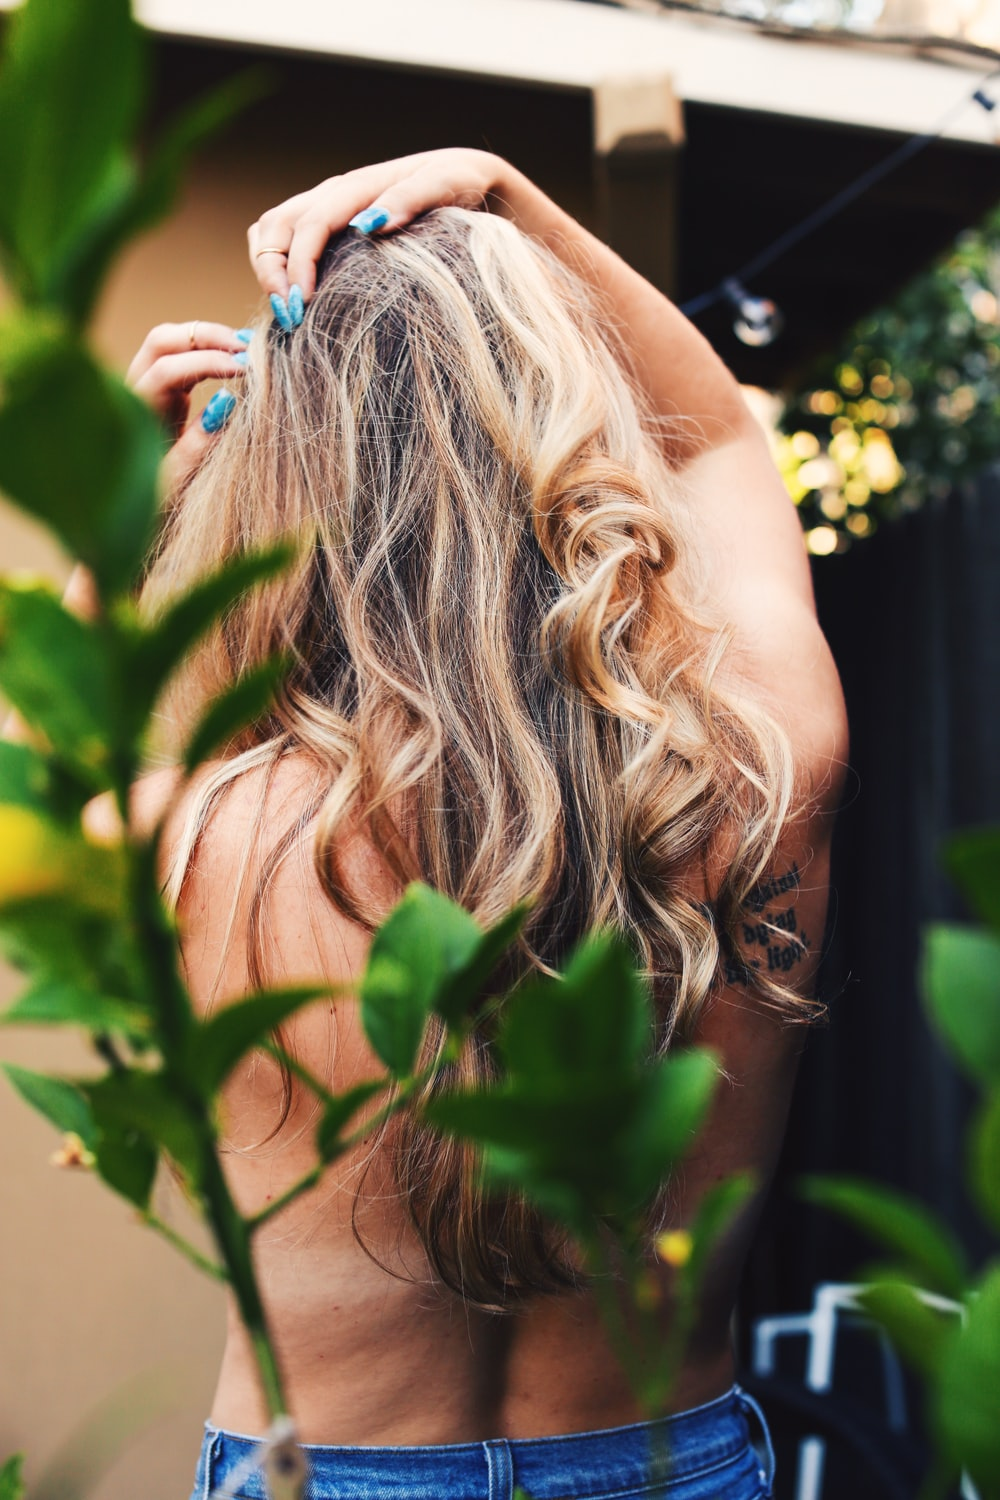 girl with blonde hair looking at green leaves